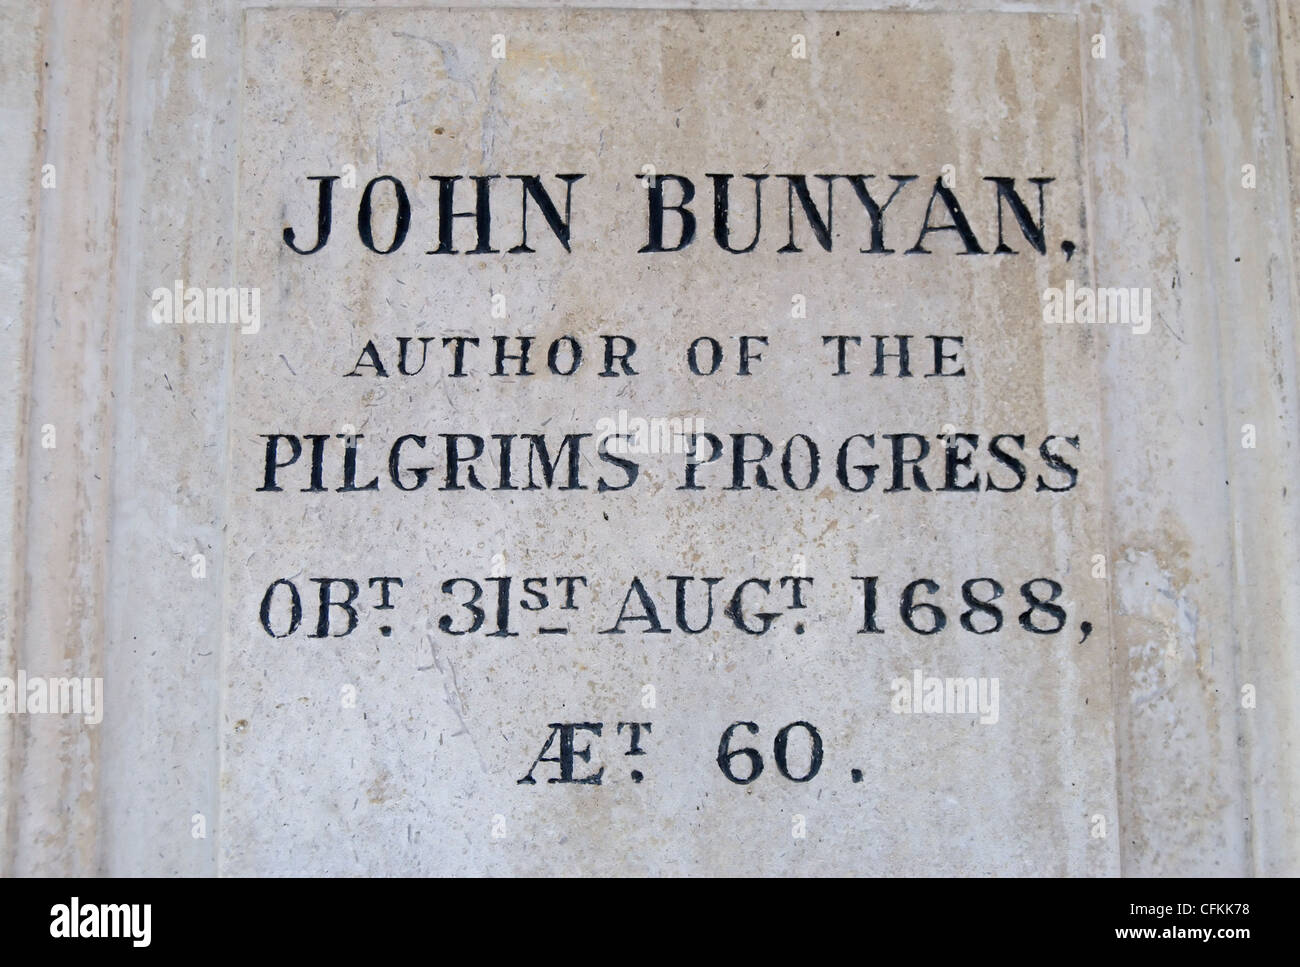 inscription on the grave of author john bunyan at bunhill fields cemetery, london, england - Stock Image